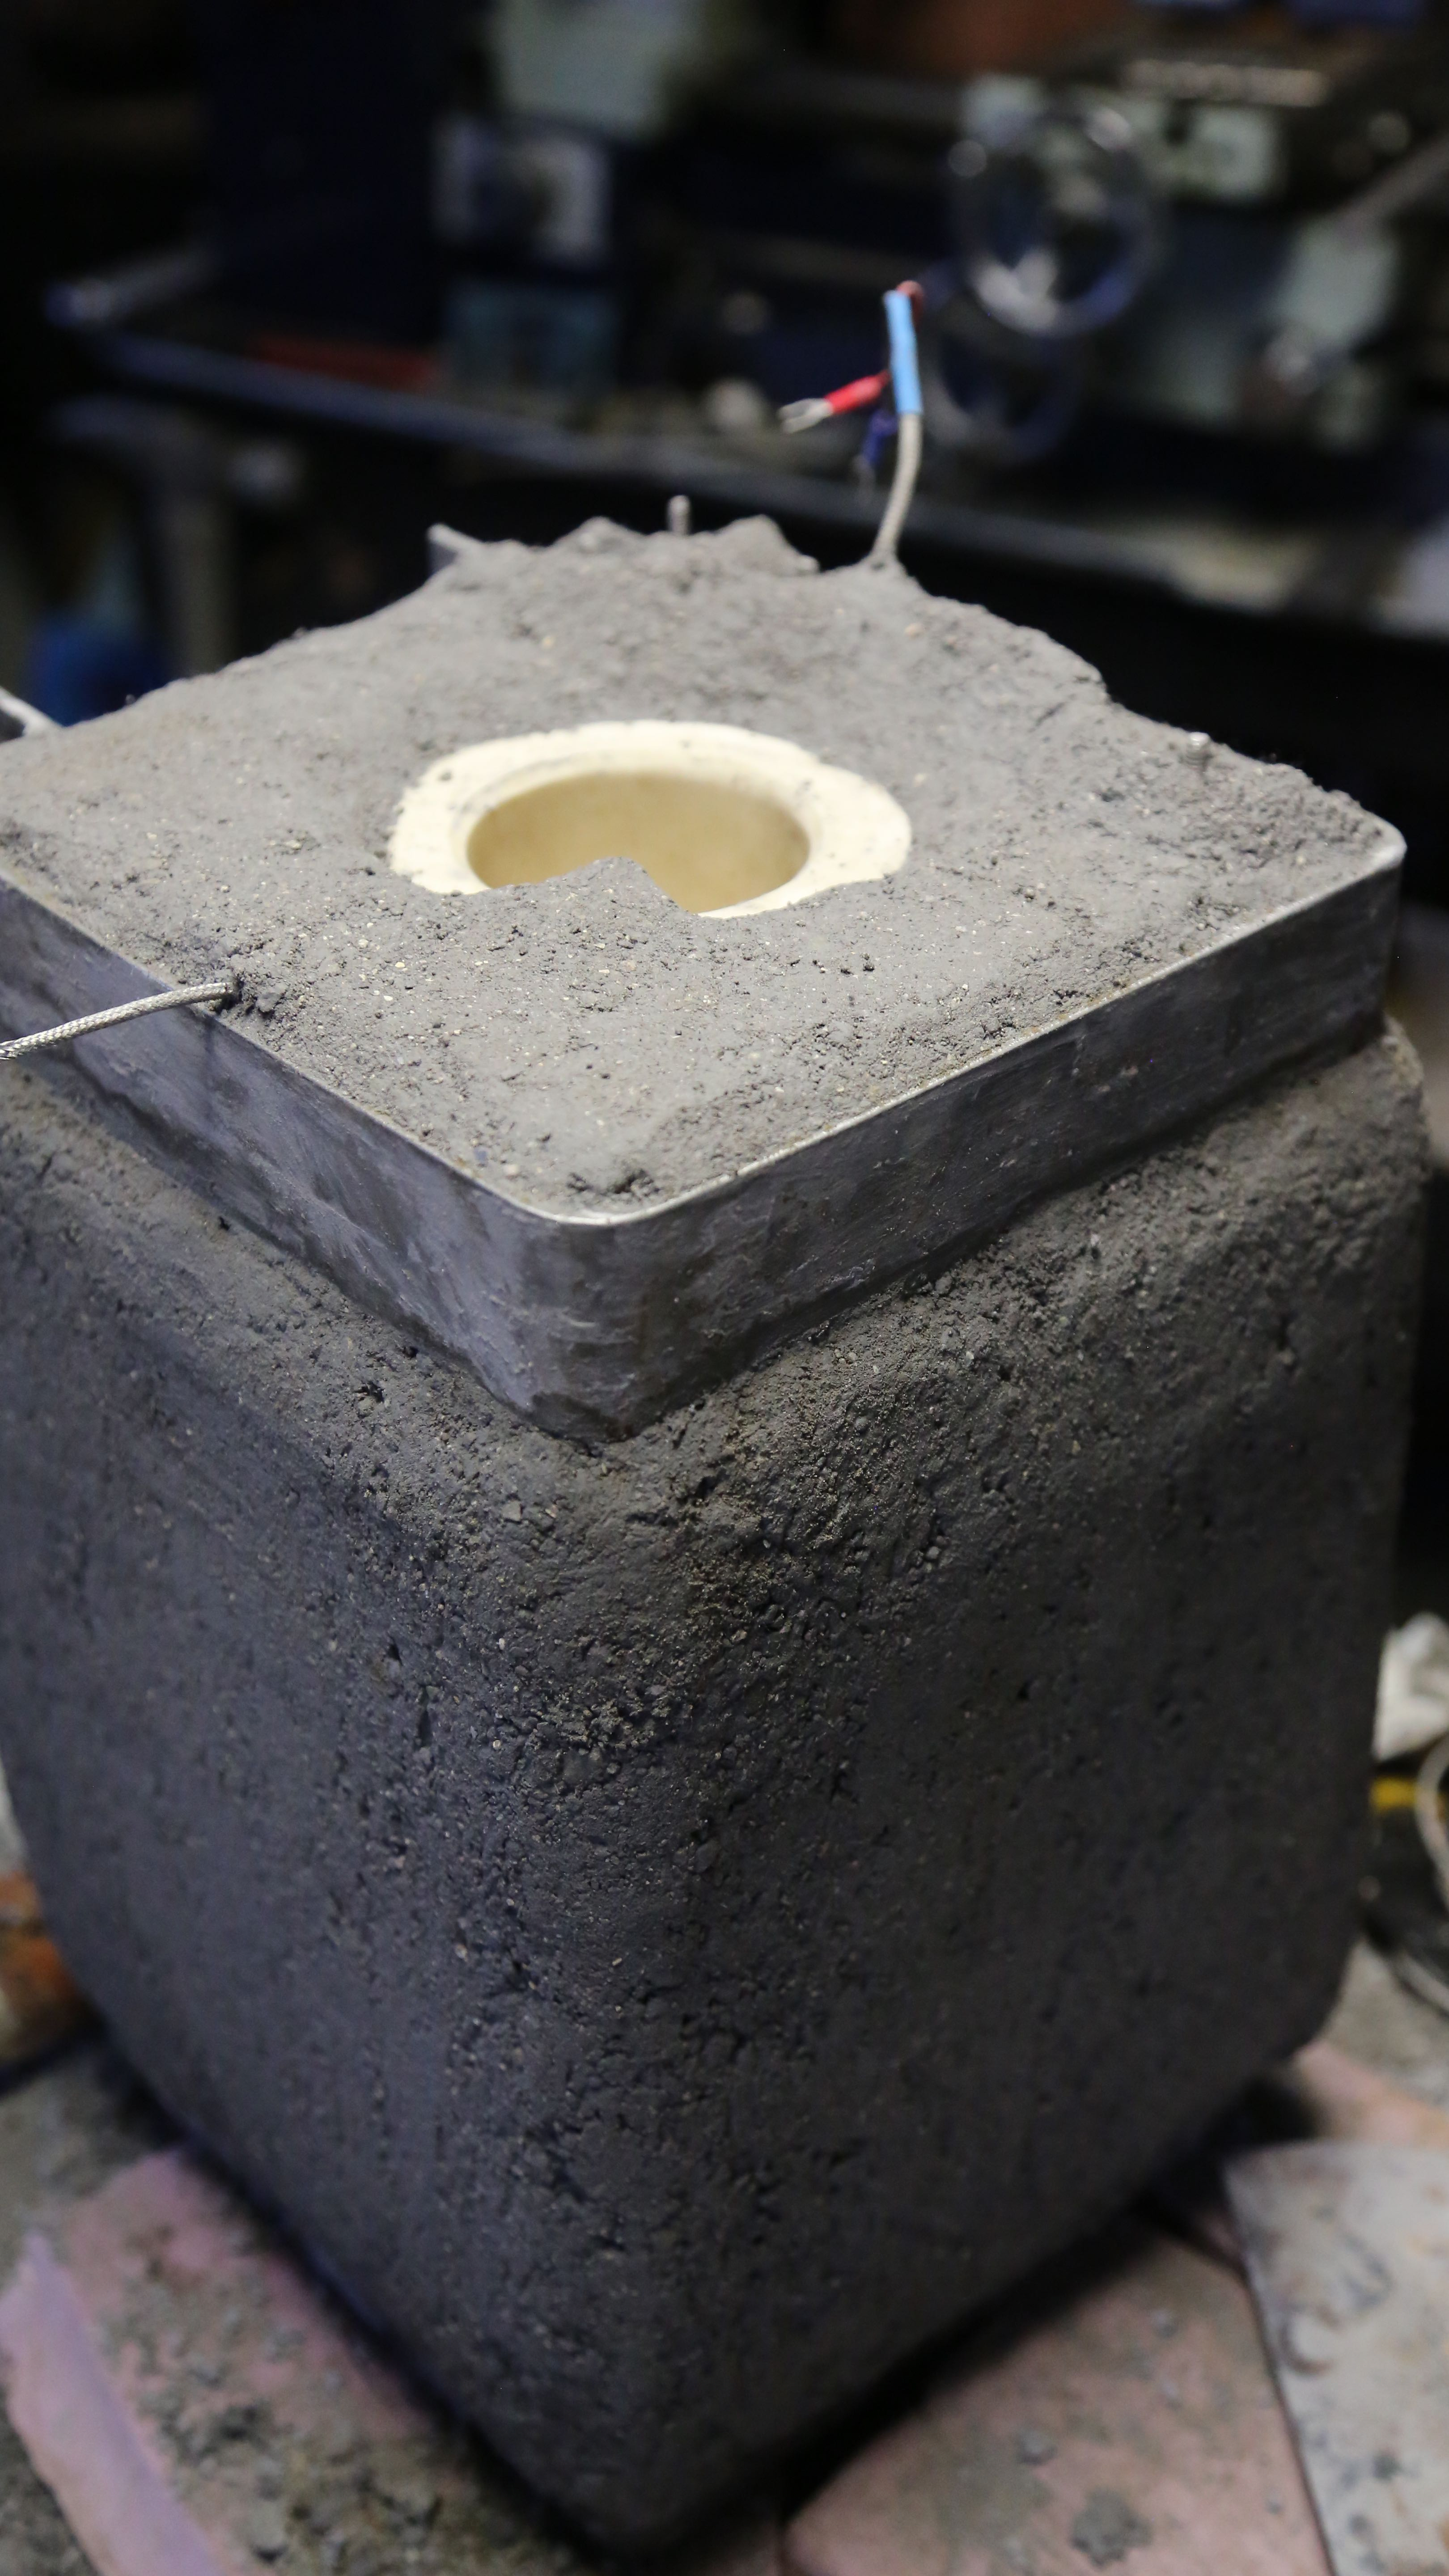 Now we have to wait before putting the whole crucible cart into an oven for its firing schedule